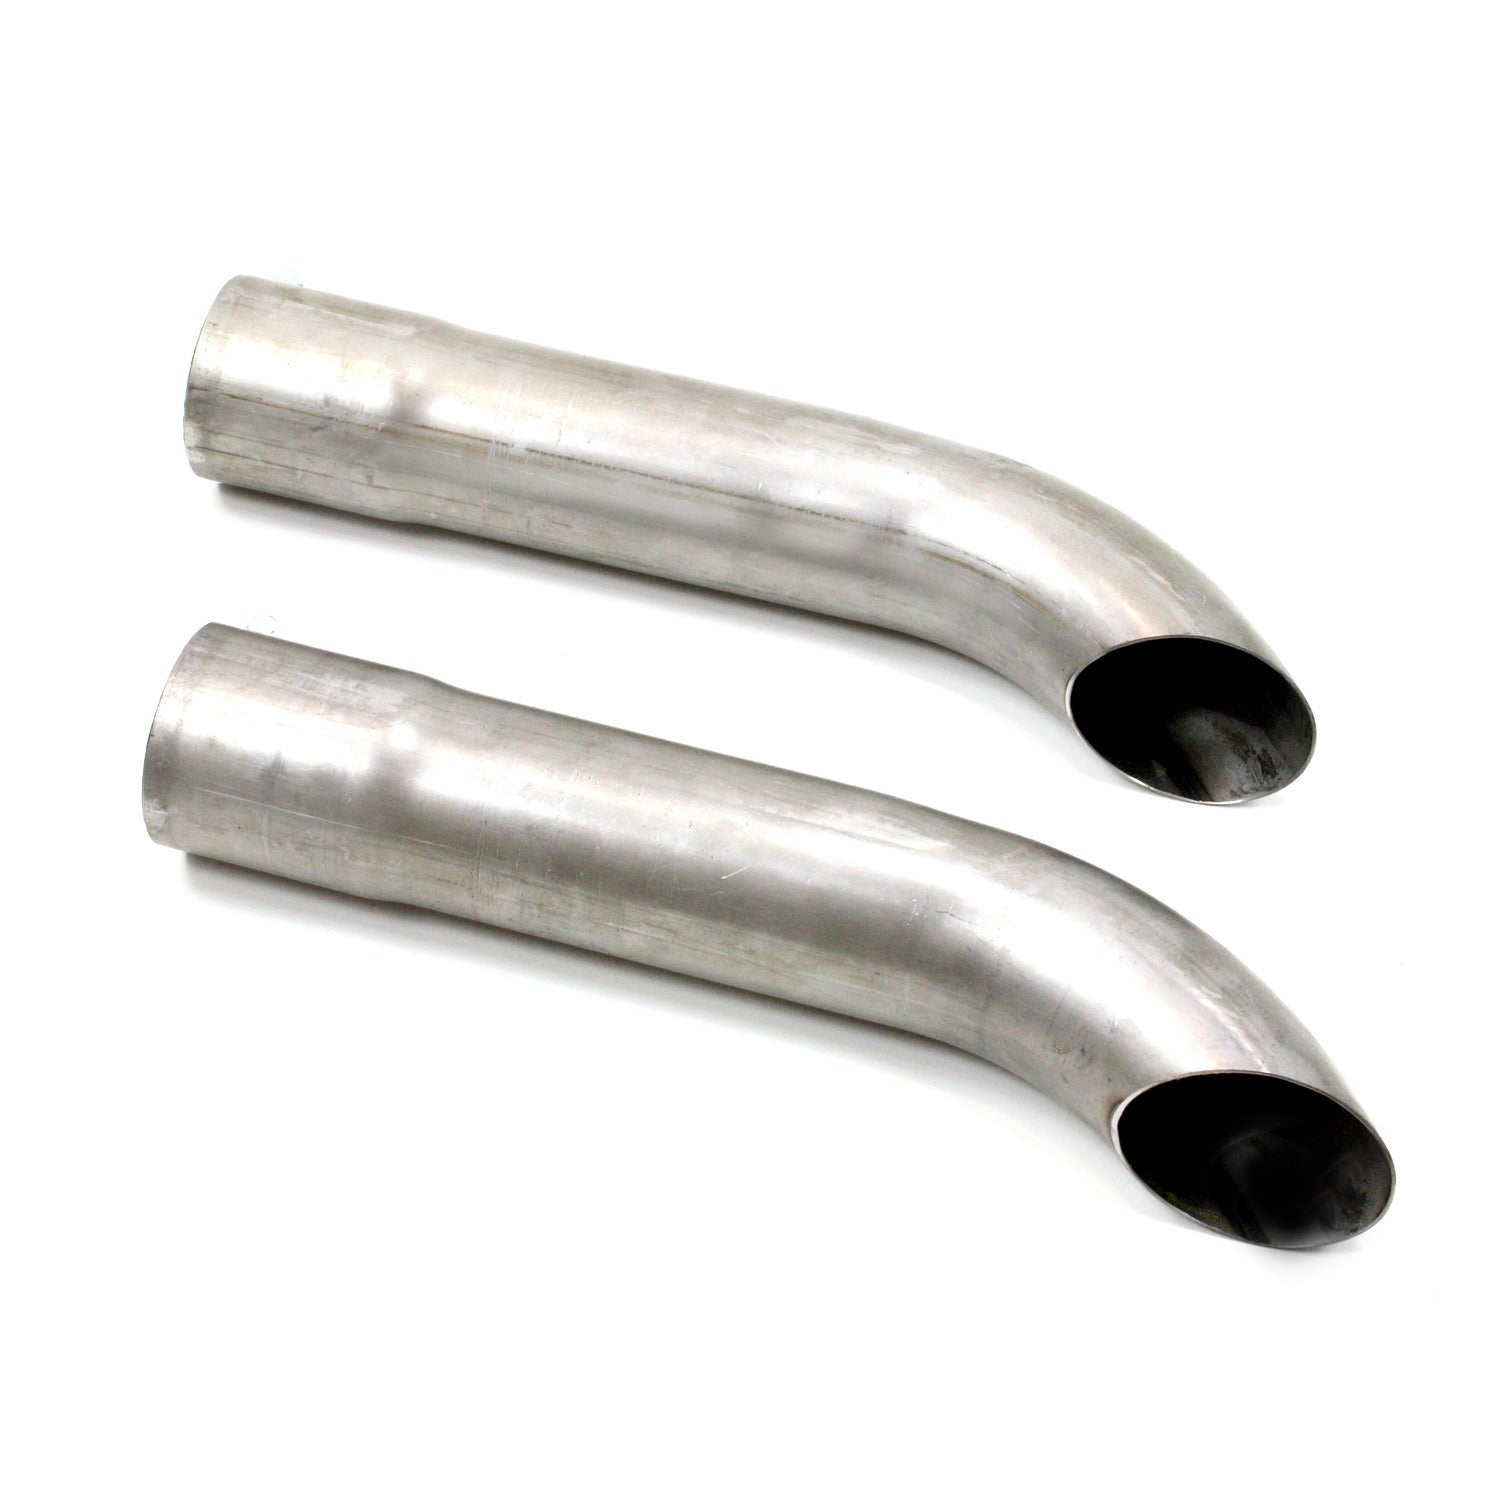 "Patriot Exhaust H3812 Side Tubes 20"" Turnout Muffler Raw Steel"